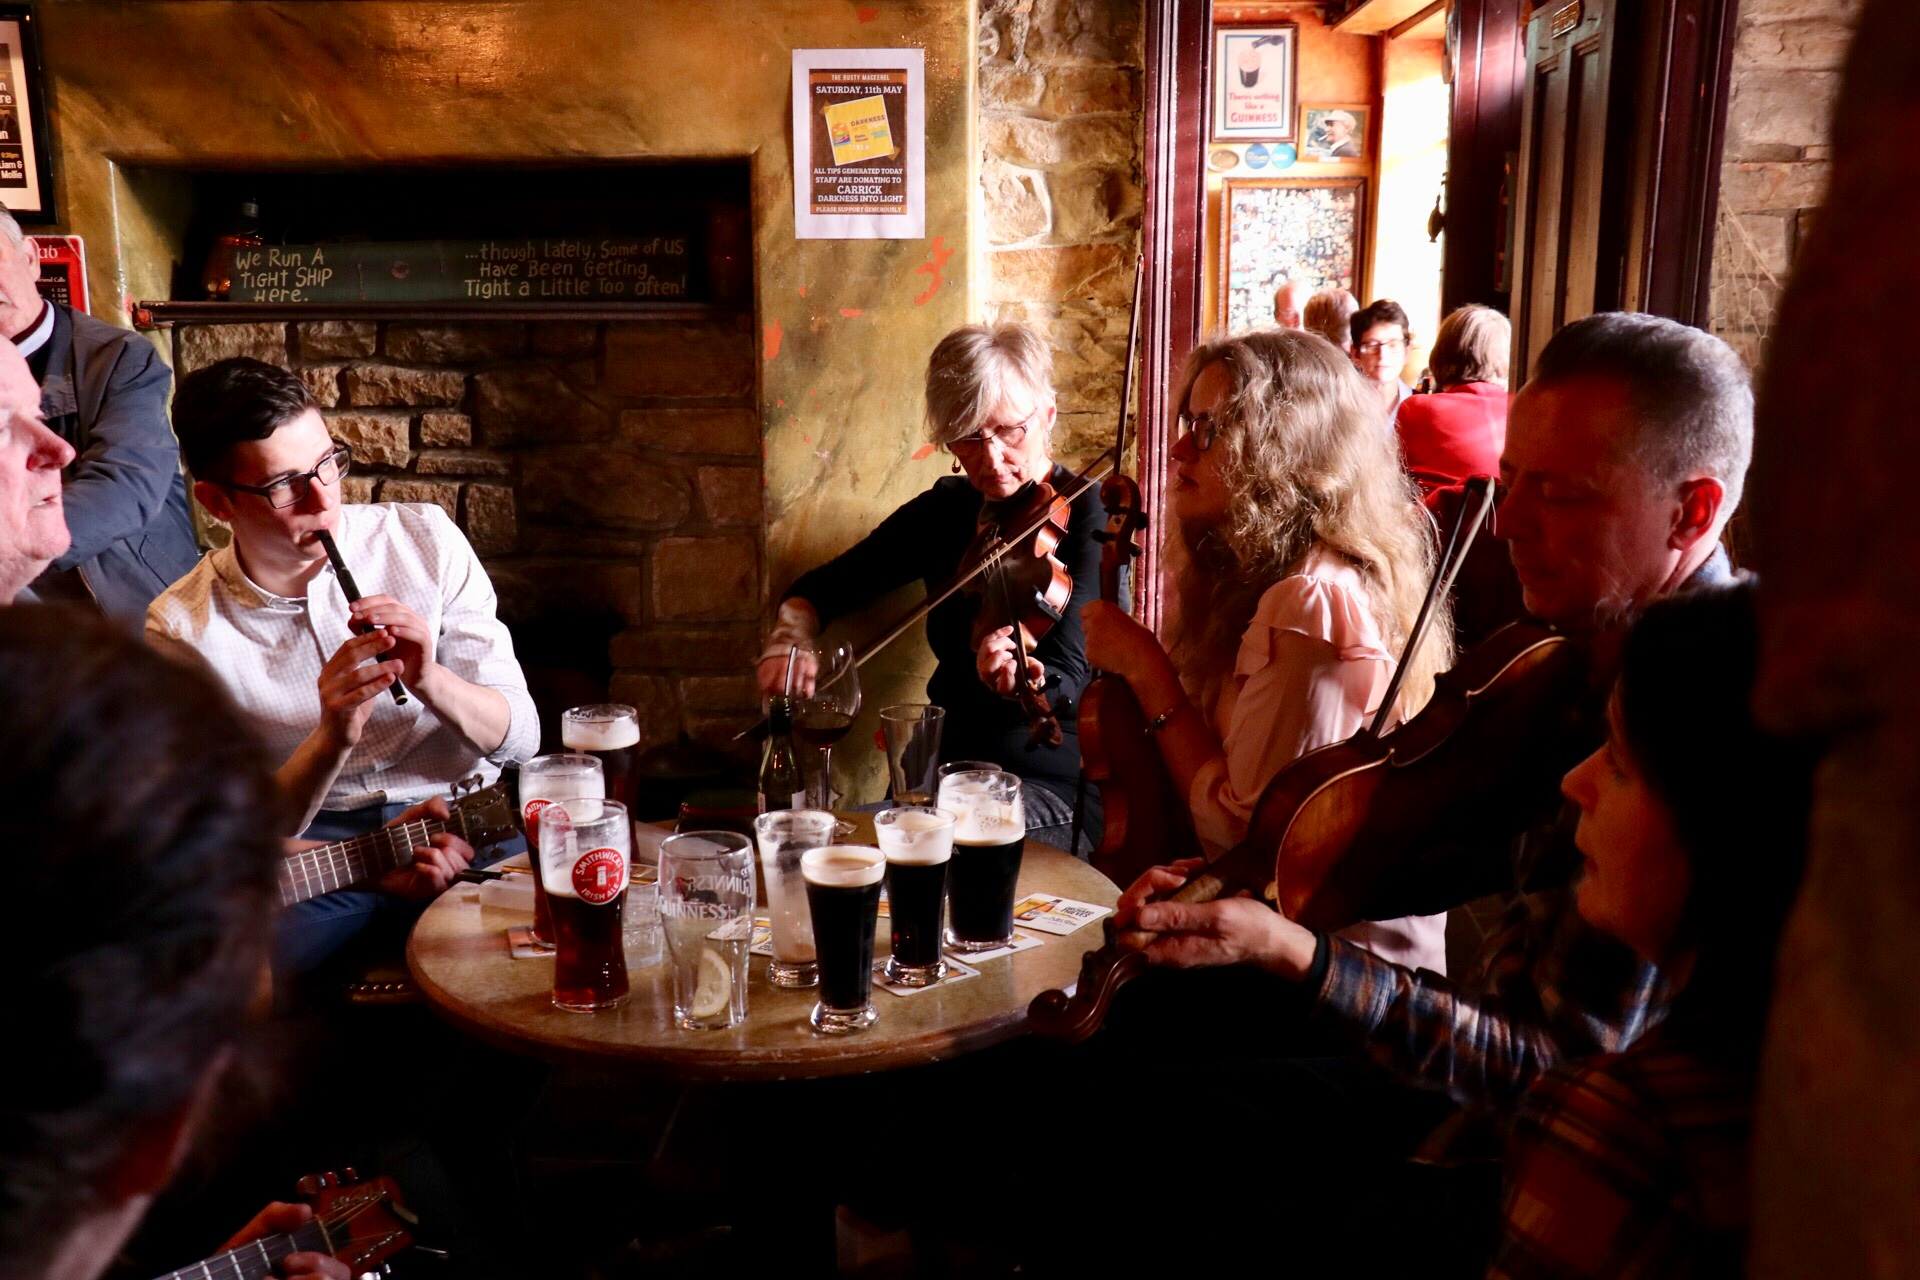 Musicians playing traditional Irish Music in a pub